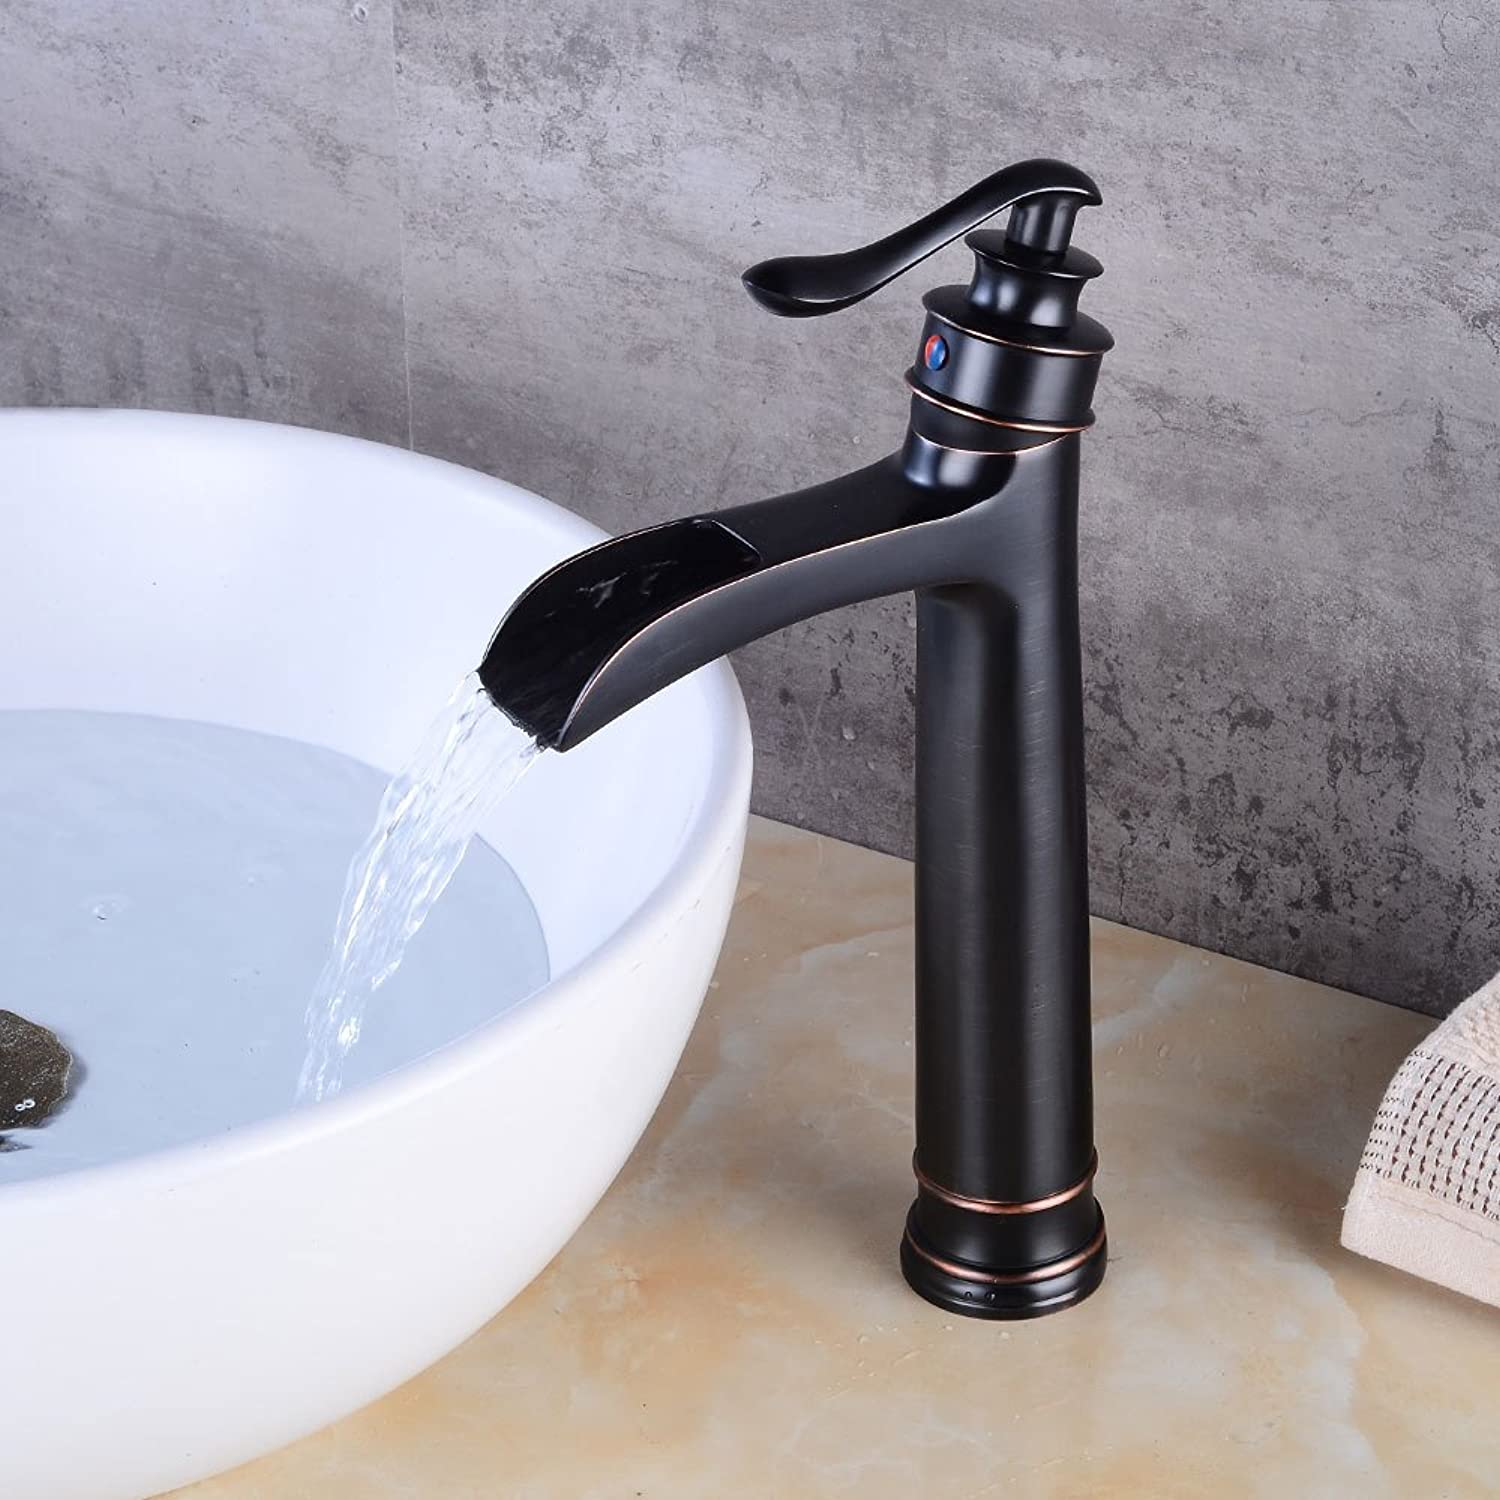 Makej European Type Black Antique Waterfall Cold Hot Water Faucet Retro Single Hole